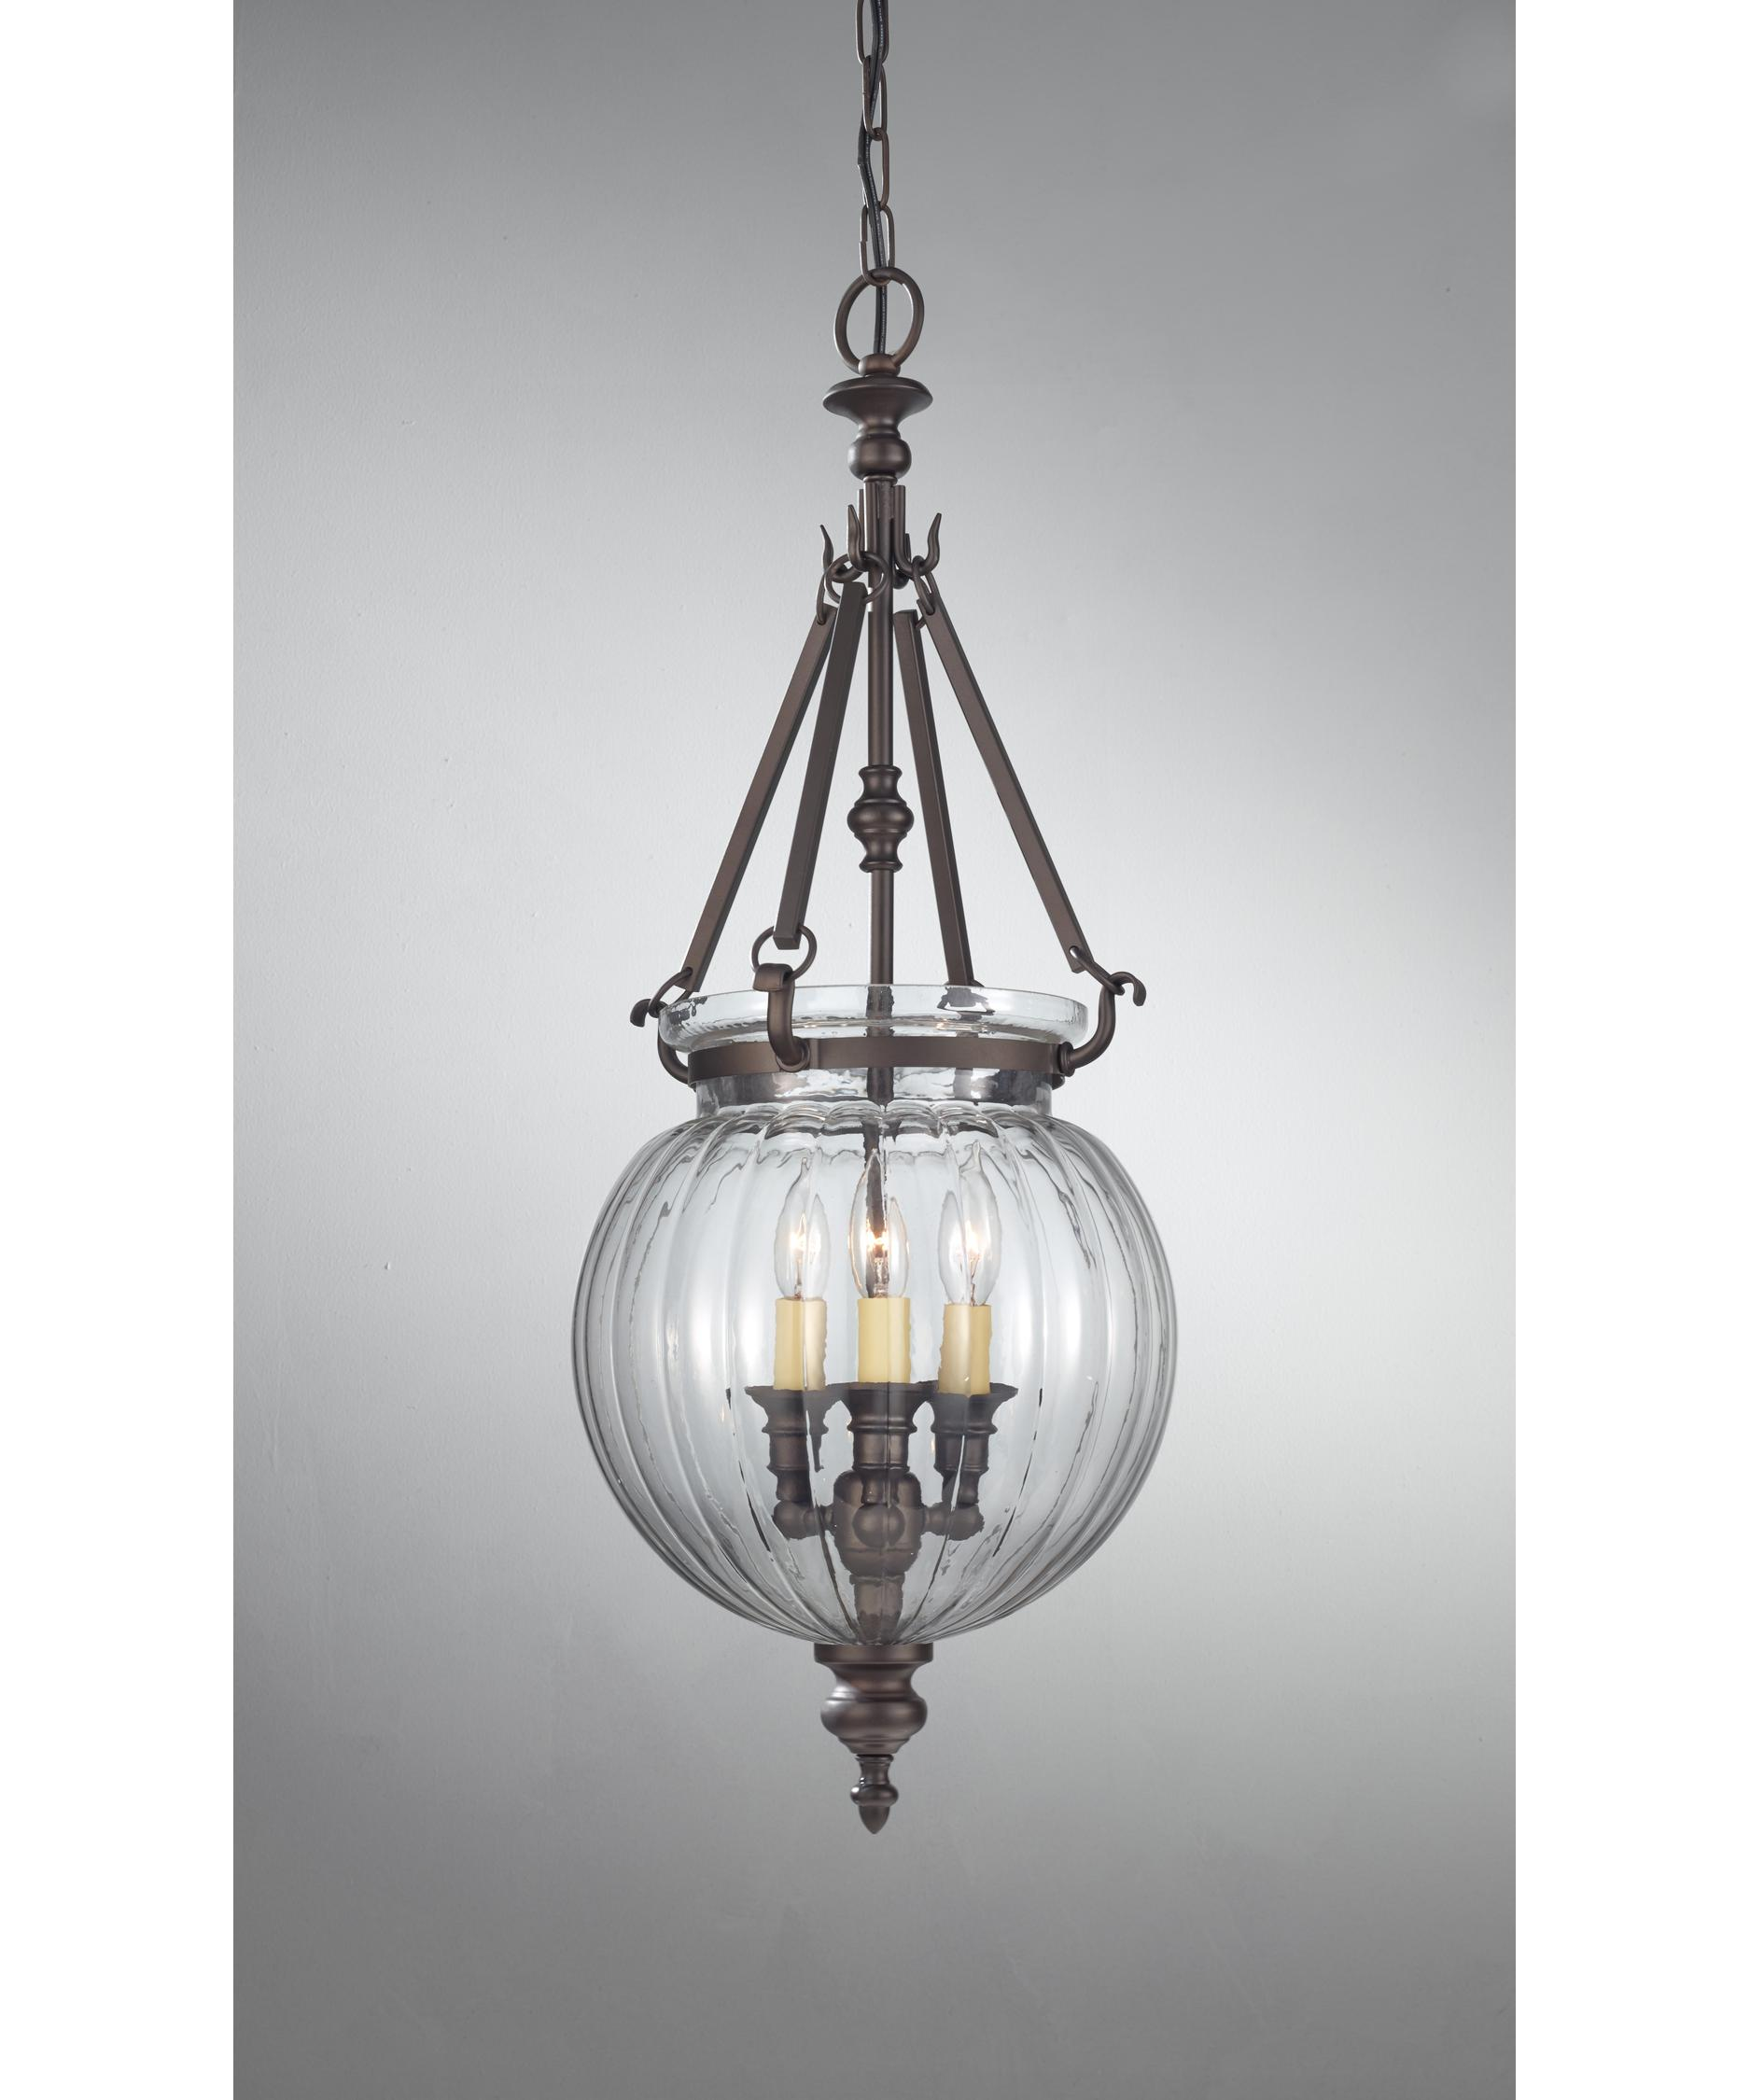 Murray Feiss Luminary 11 Inch Wide Foyer Pendant – Murray Feiss Chandeliers